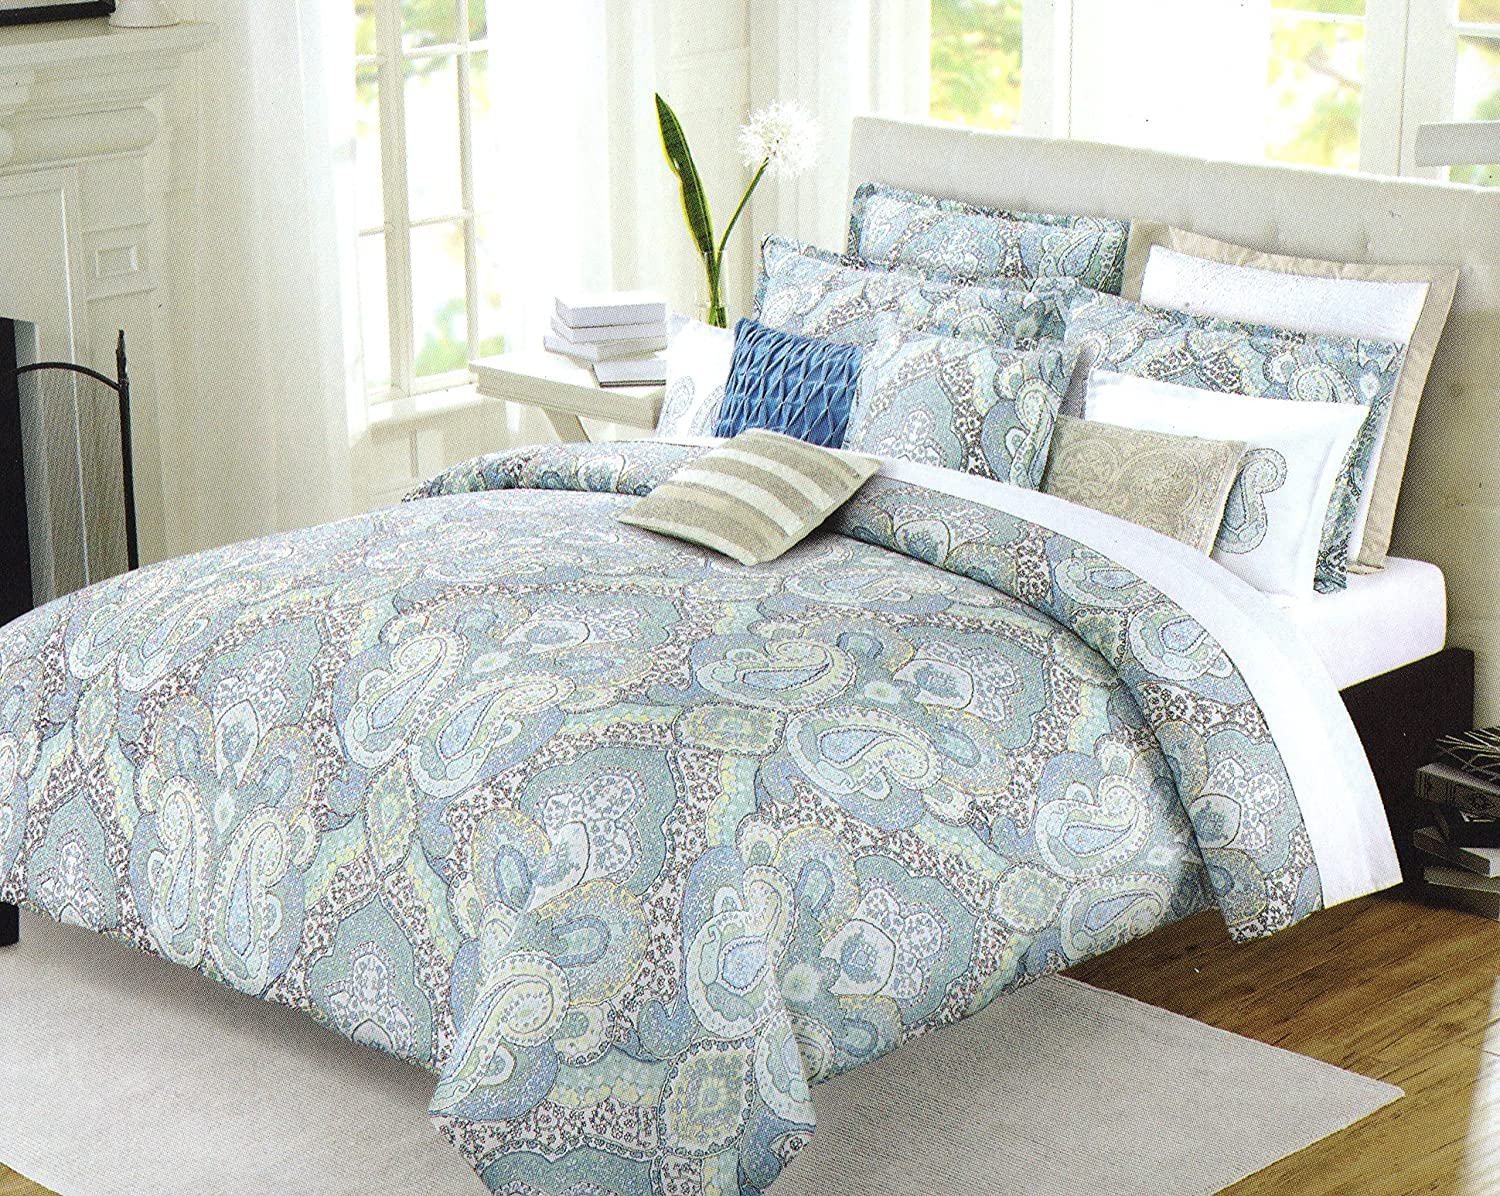 Amazon com nicole miller home full queen duvet cover and shams set turquoise teal grey green paisley large moroccan medallion print home kitchen